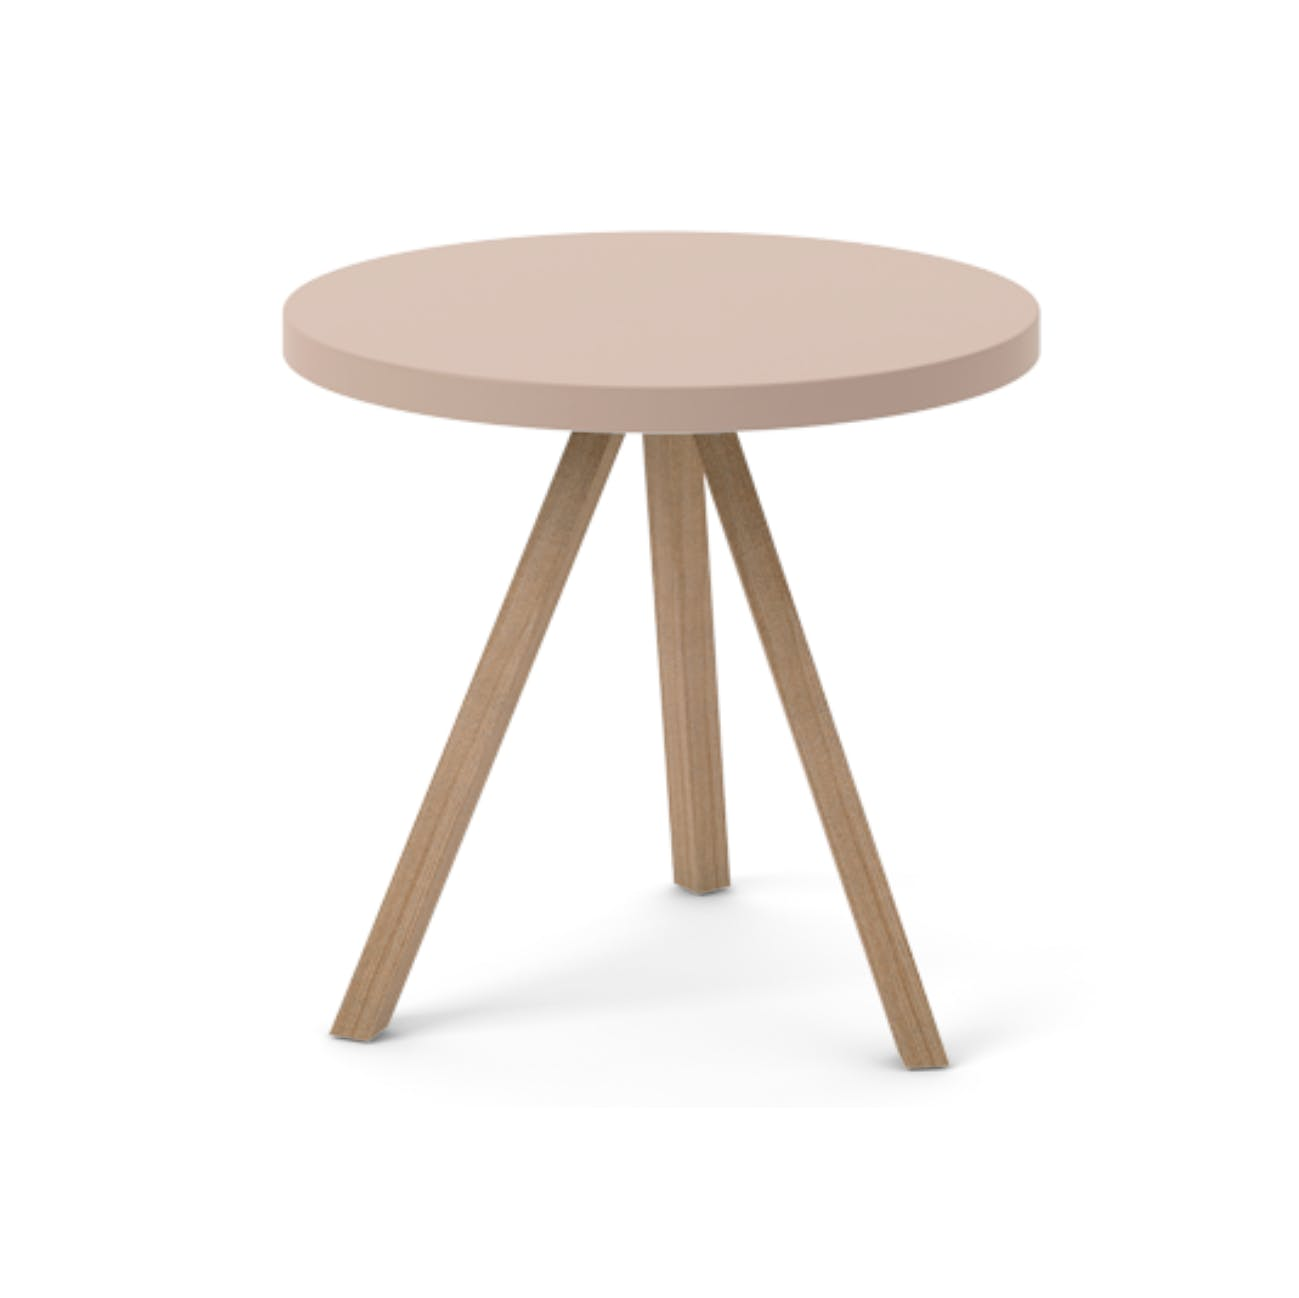 Punt Furniture Flak Table Thumb Haute Living